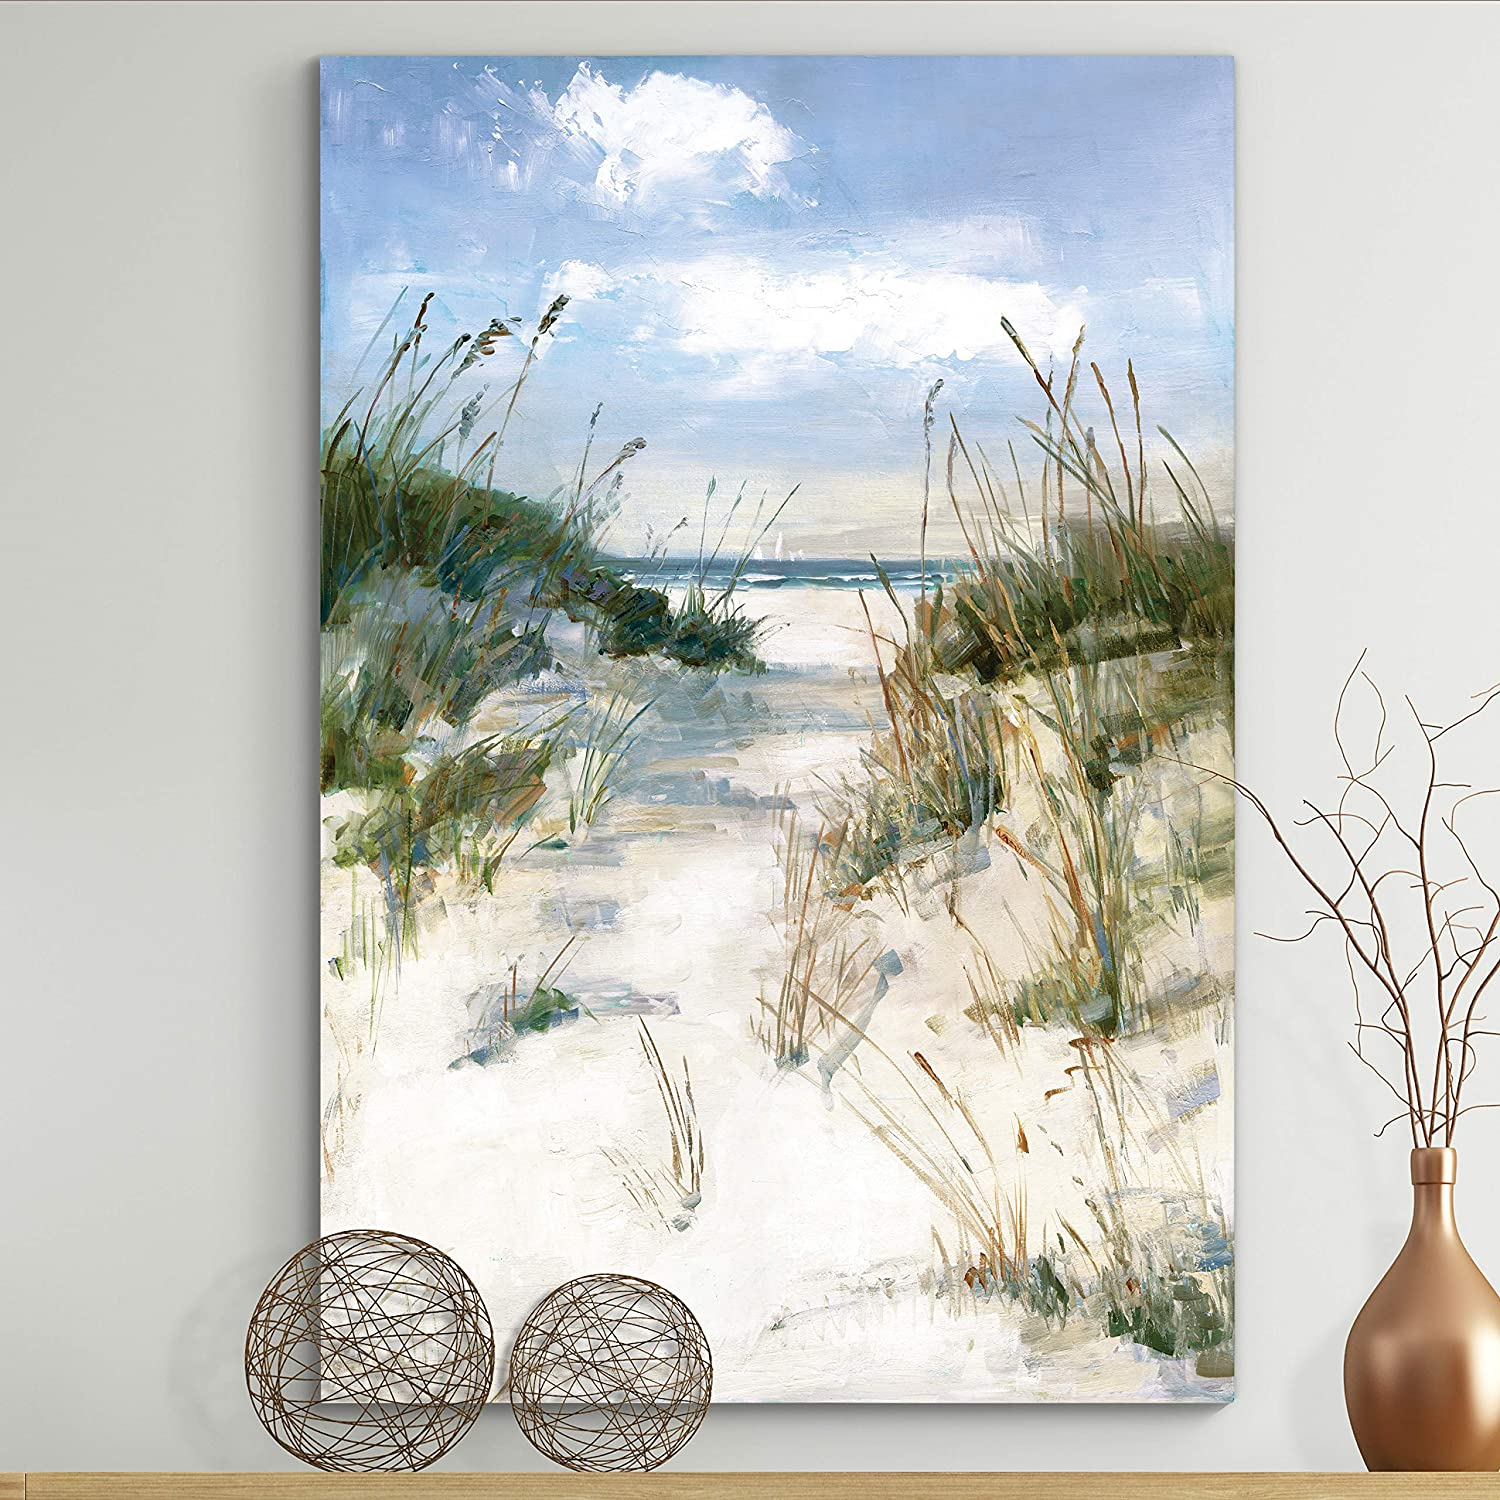 Amazon Com Renditions Gallery Ocean Forest Photographic Prints On Gallery Wrapped Canvas Art Landscape Wall Decorations Ready To Hang For Home Office 12x18 Dune View Home Kitchen